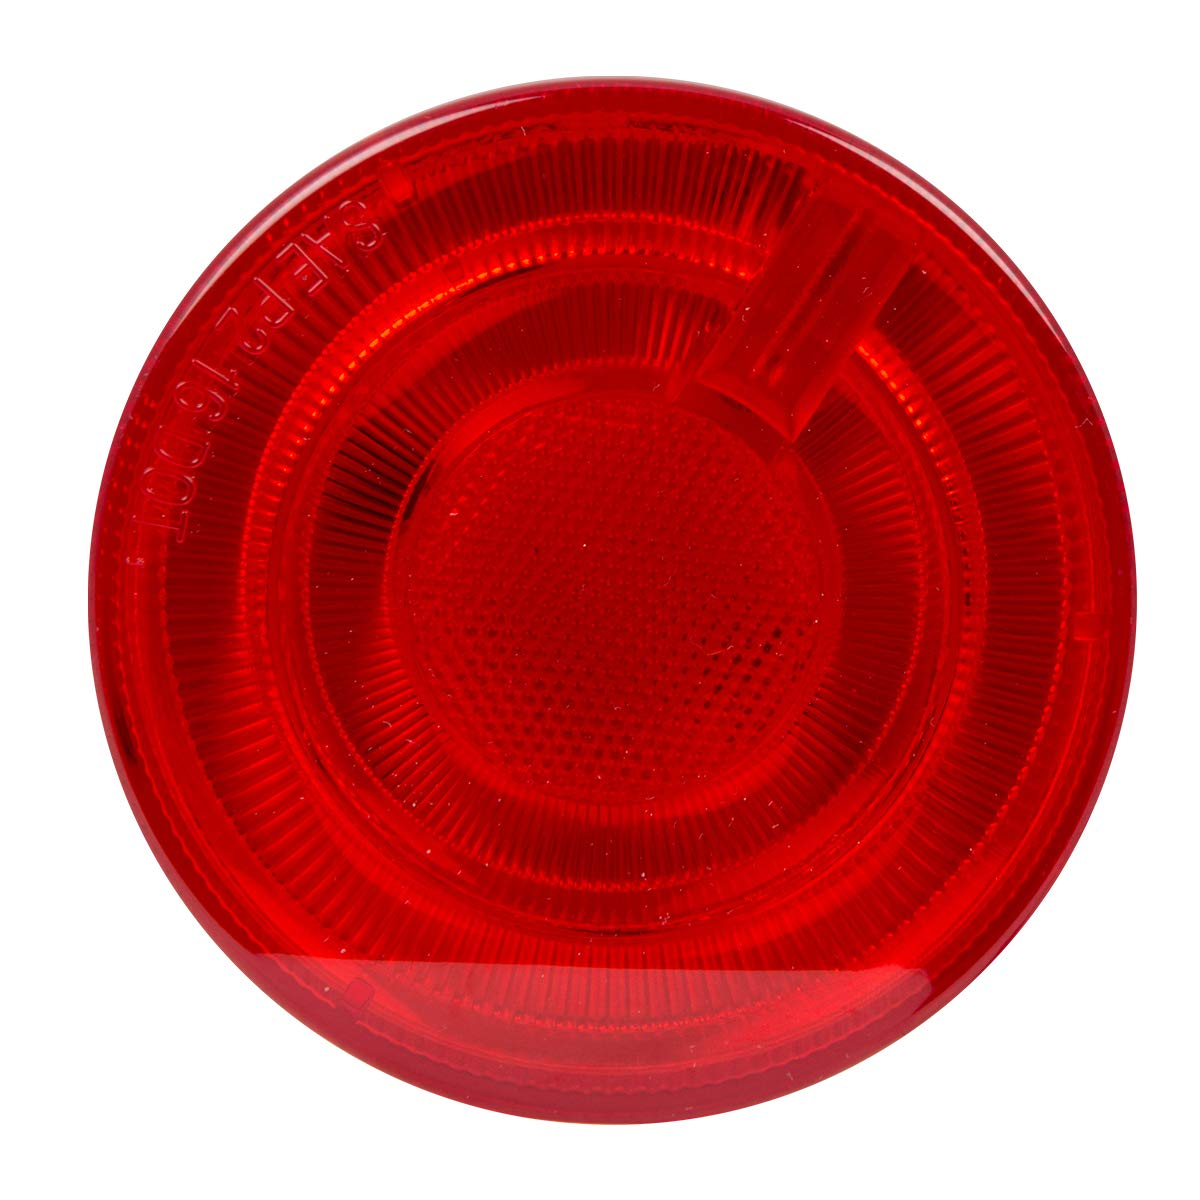 Grand General 75942 Sealed Light 2-1//2 Prime Red 5 LED, High//Low 3 Wires